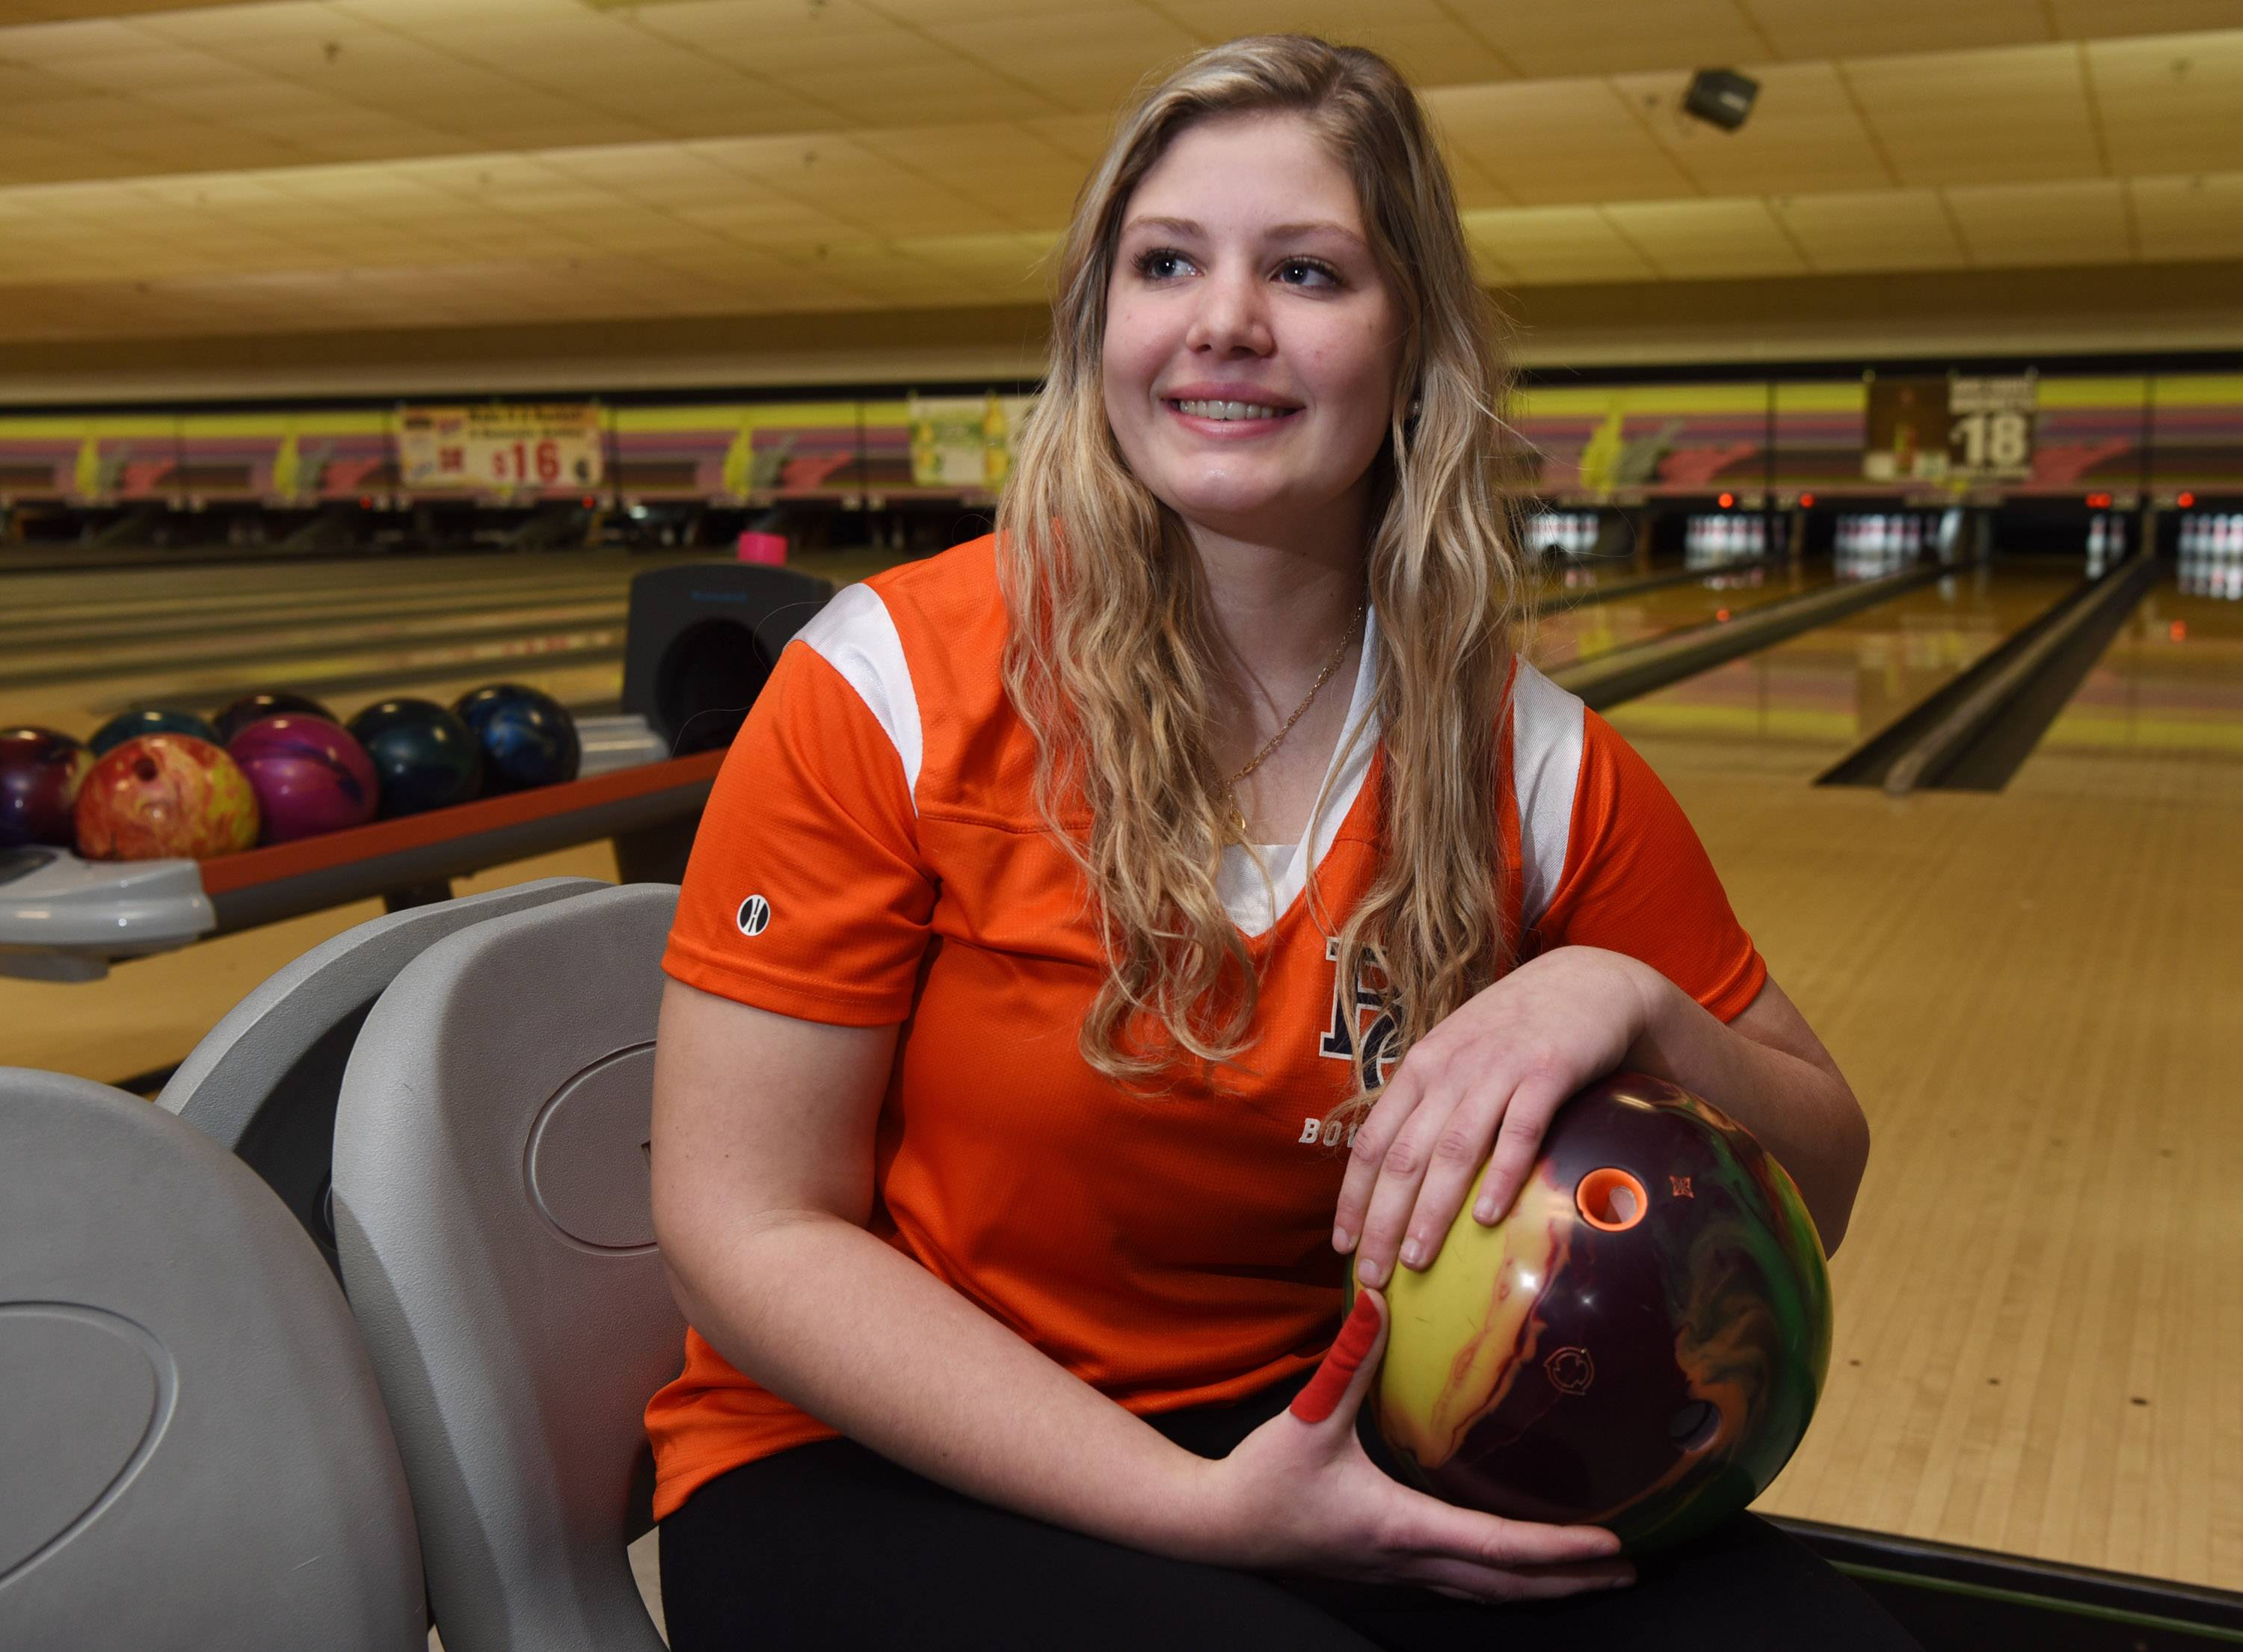 Girls bowling: Buffalo Grove's Soskich repeats despite runner-up Richae's rally